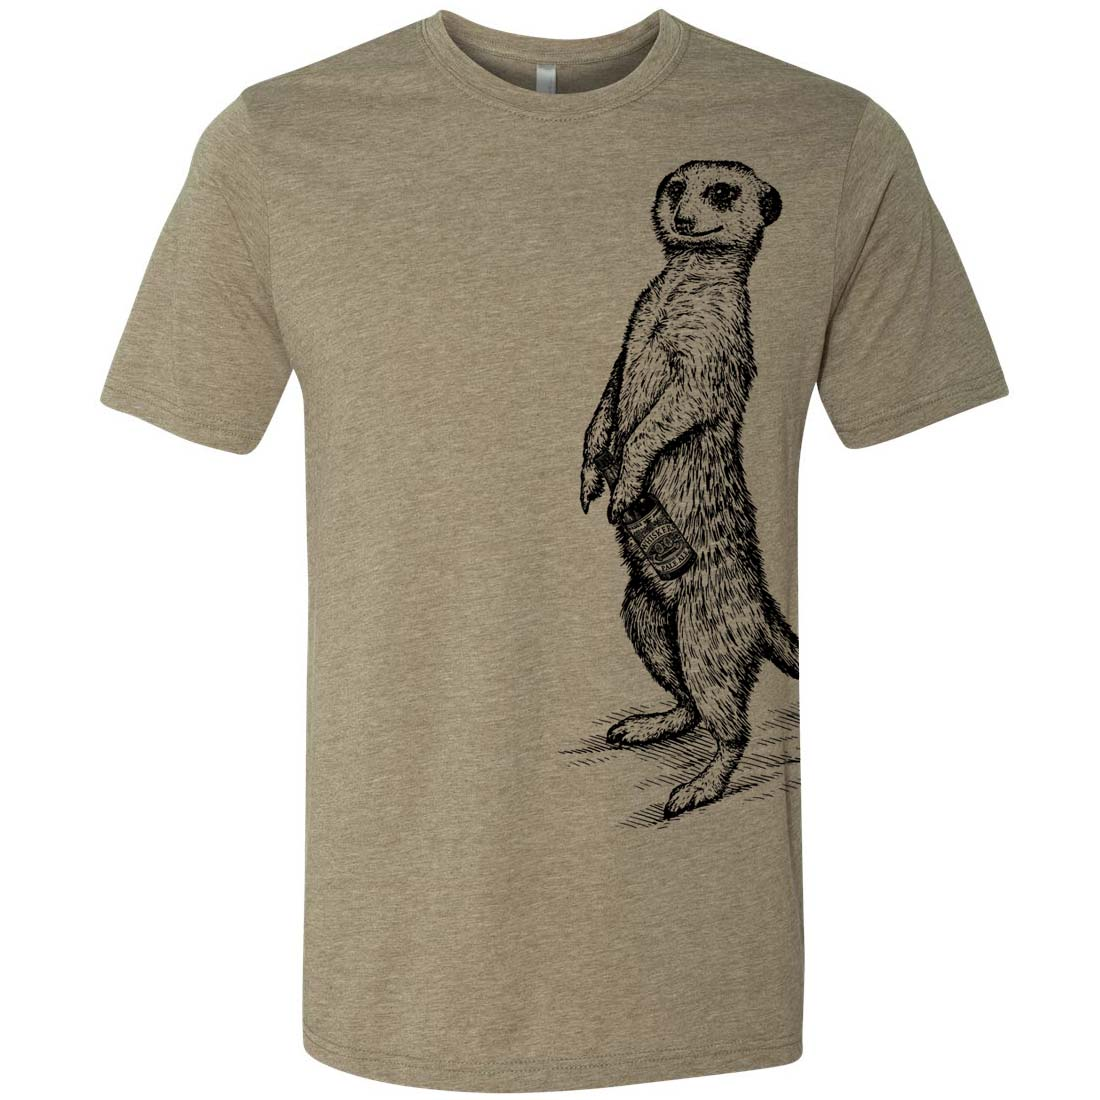 a264543f4 Beer Drinking Meerkat Craft Beer Spirit Animal Graphic T-Shirt